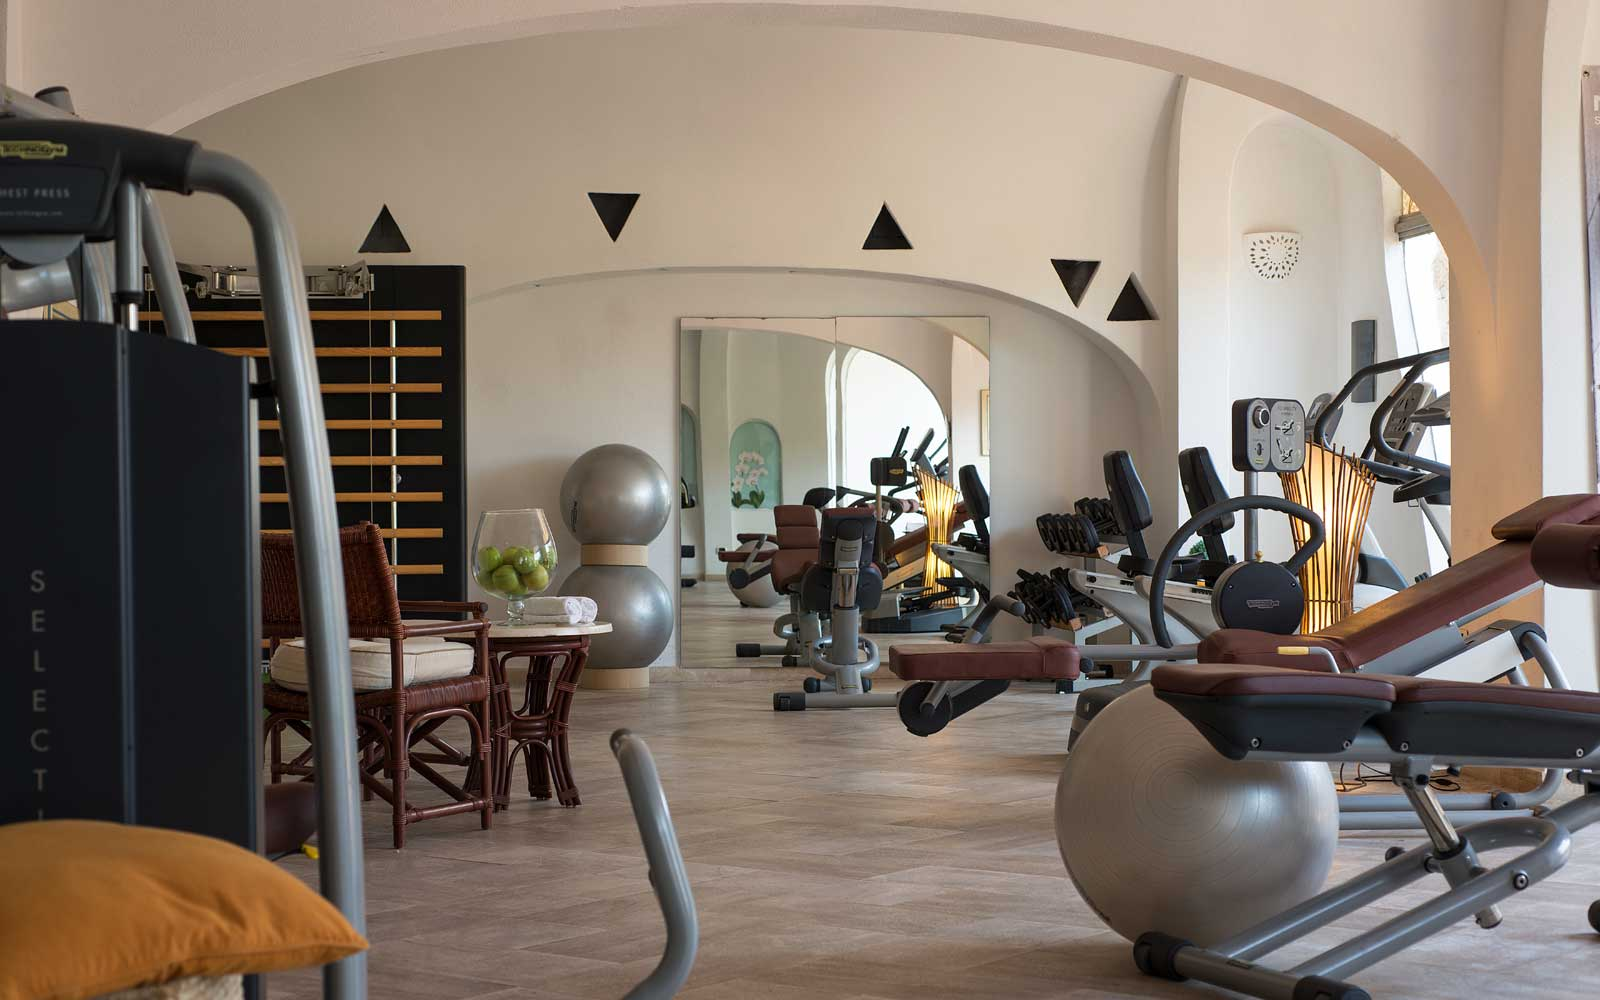 Fitness Room at Grand Hotel Poltu Quatu